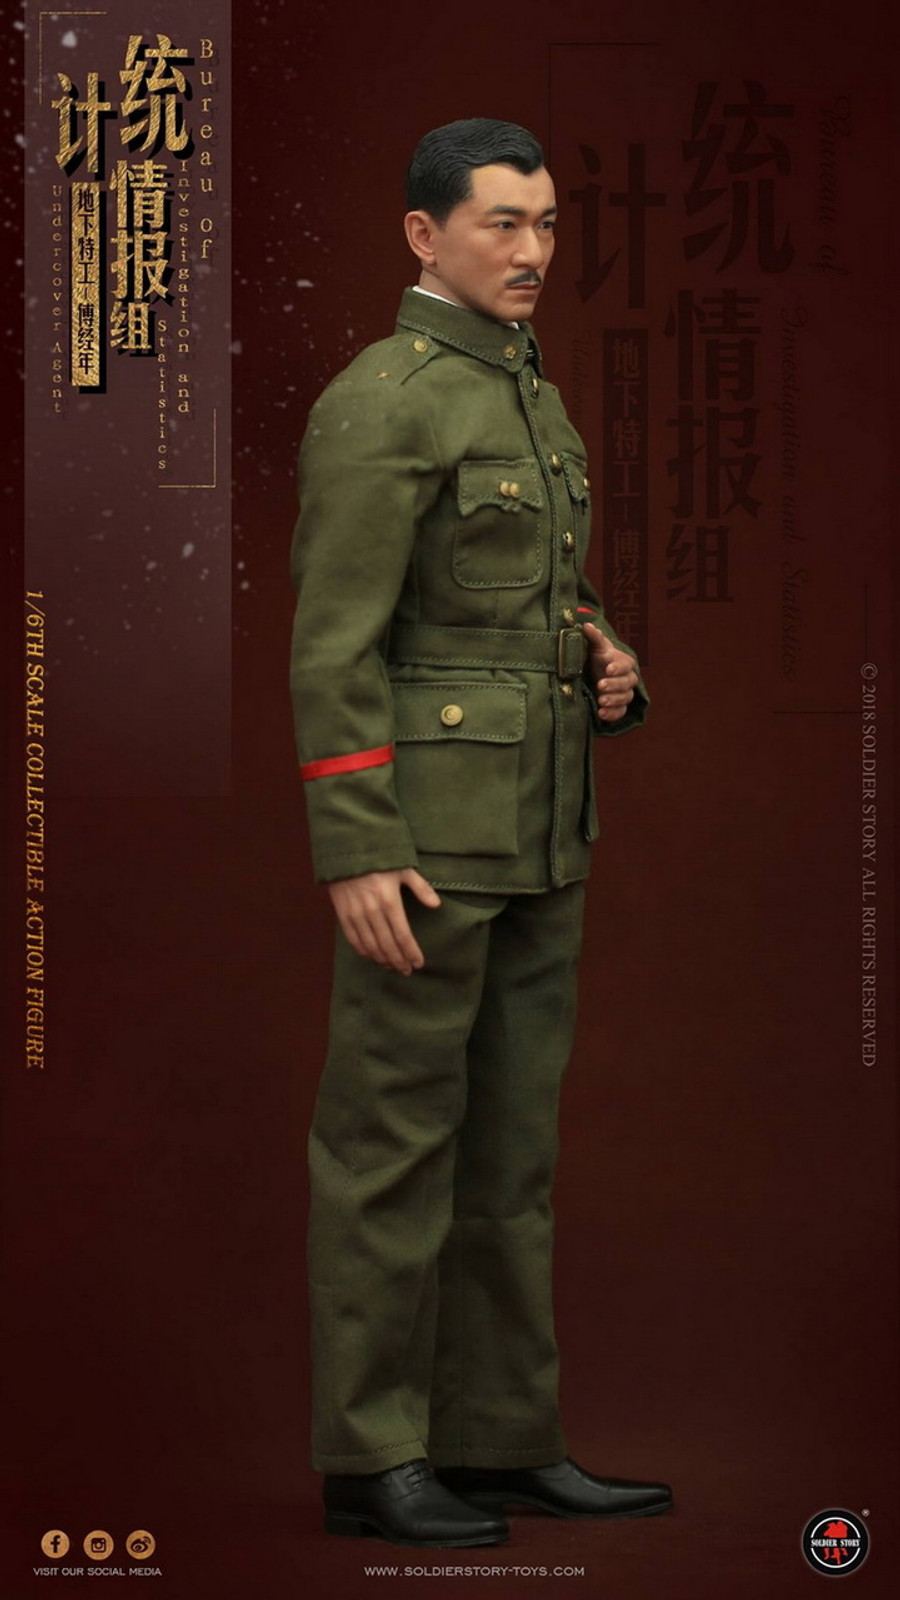 Soldier Story - BIS Undercover Agent Shanghai 1942